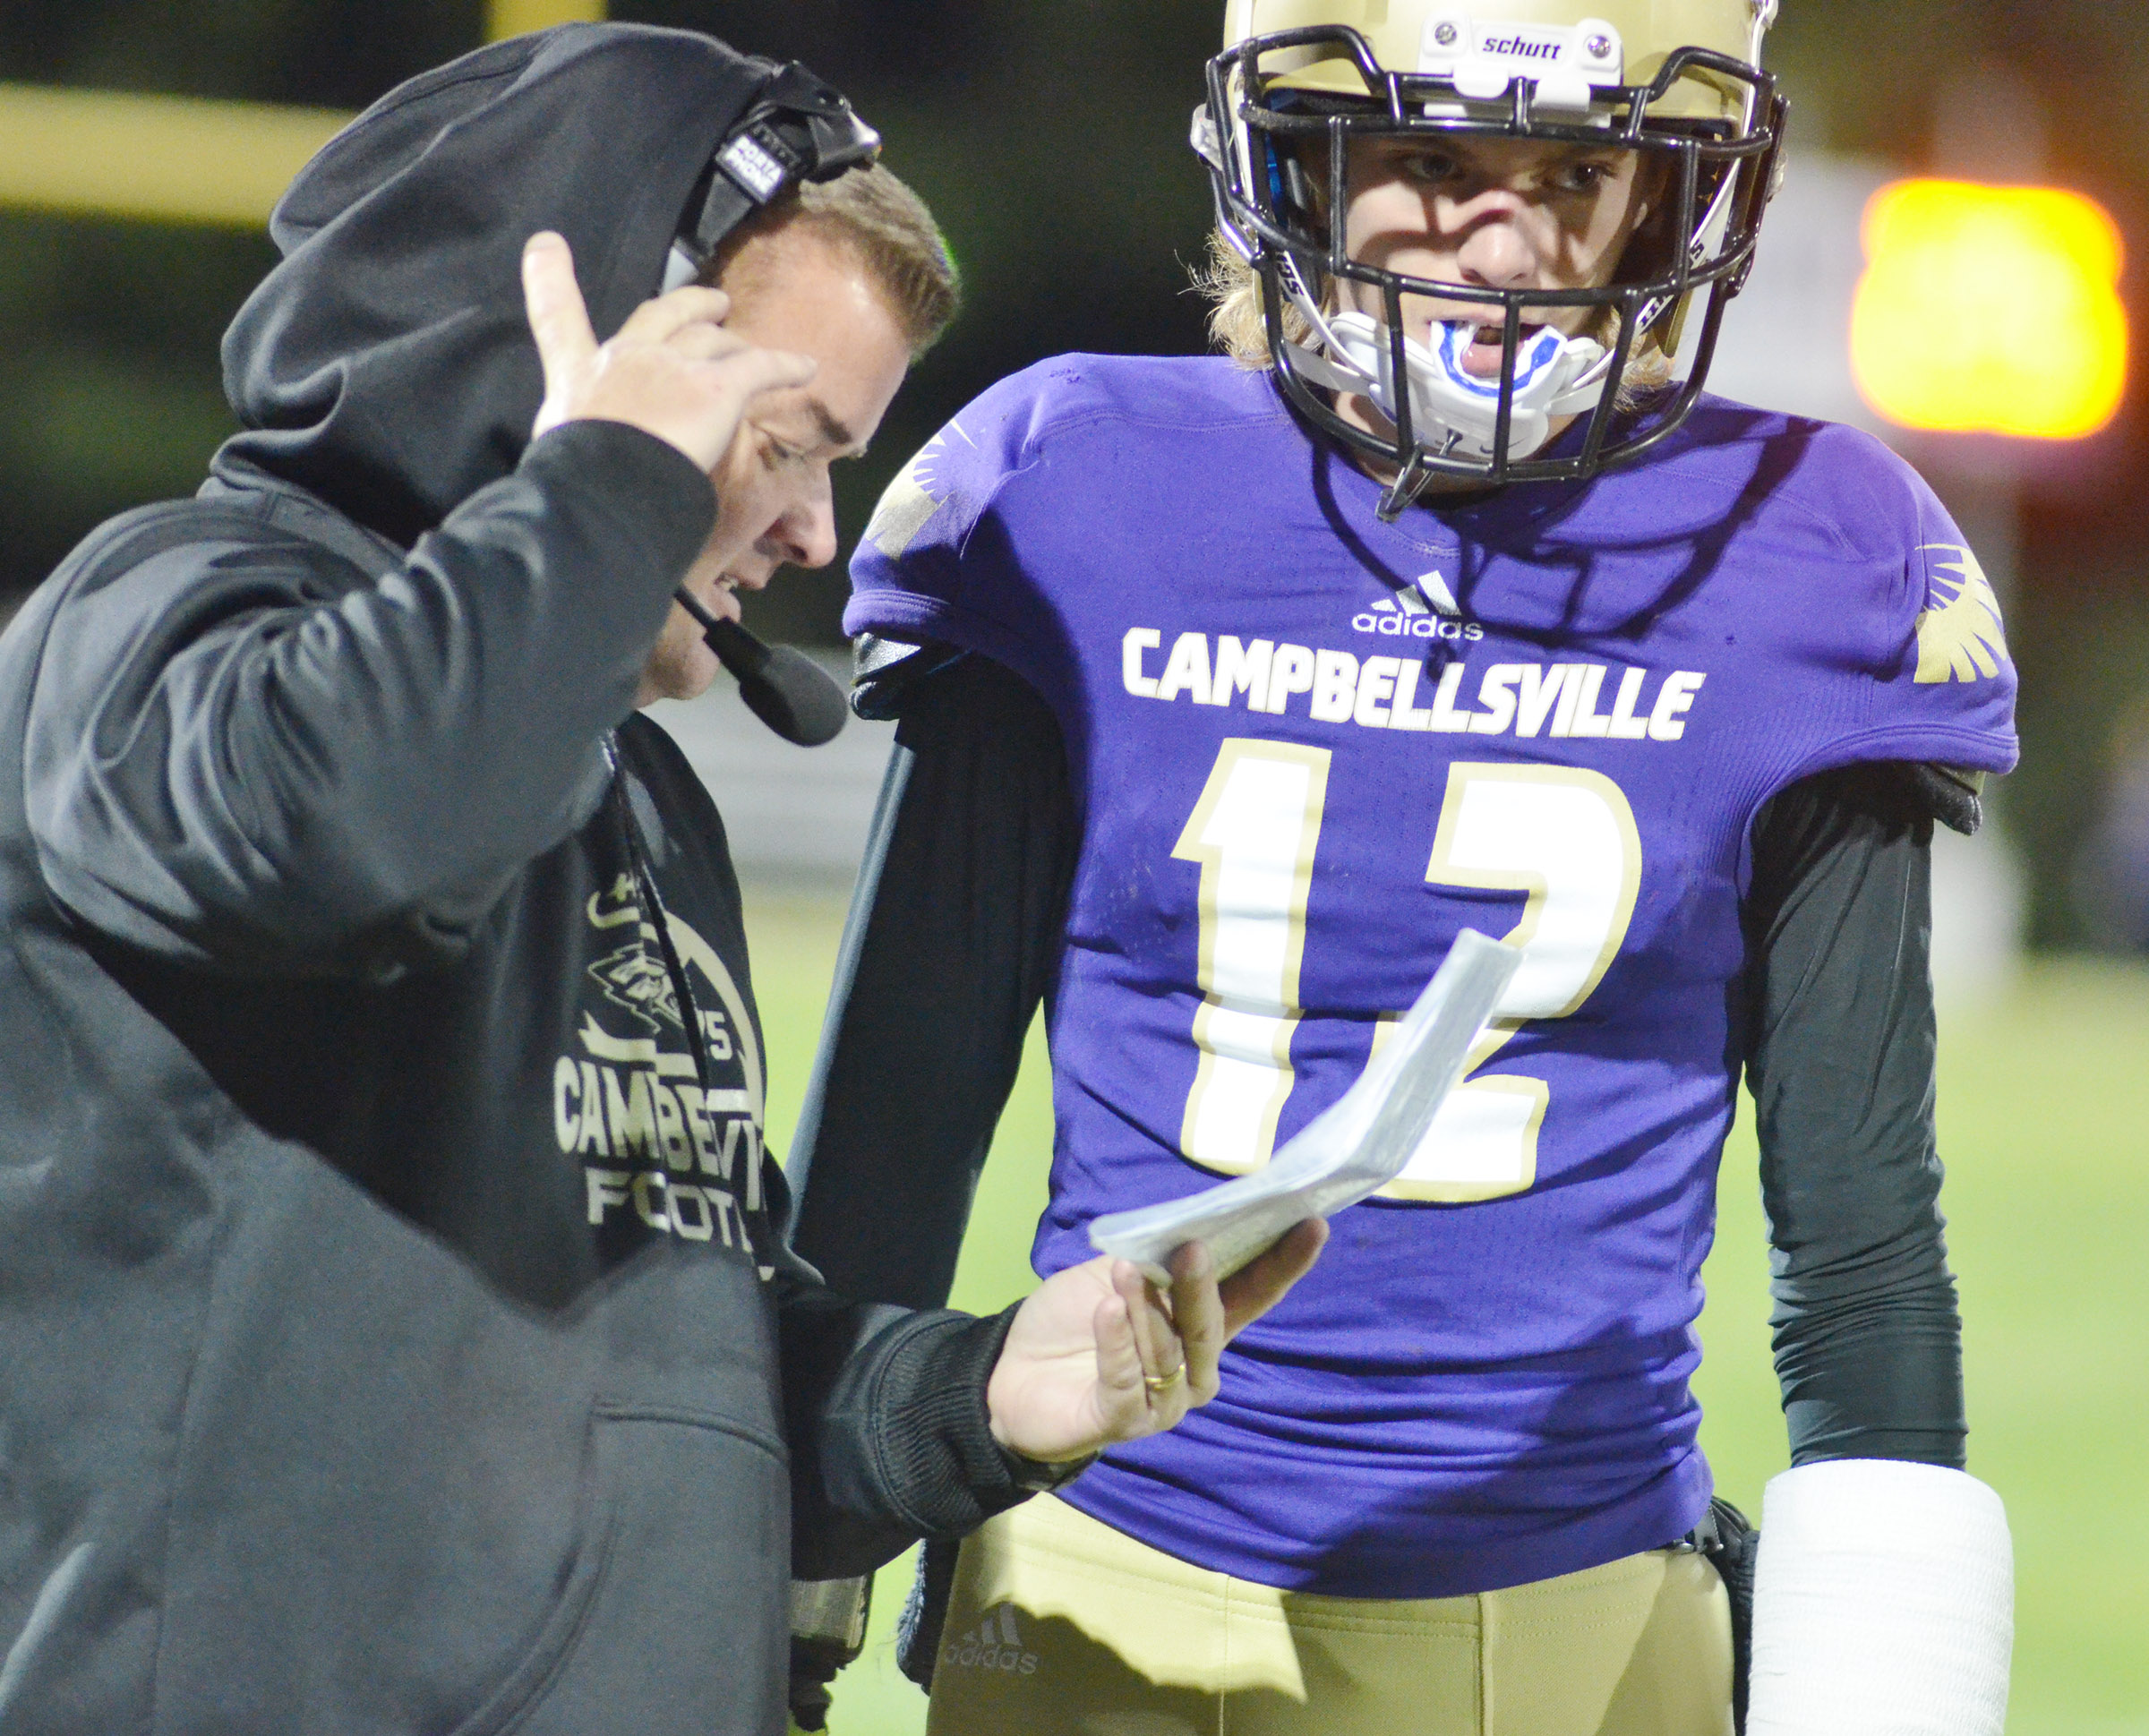 For the second year in a row, CHS head football coach Dale Estes was named Coach of the Year for Class A District 2. CHS freshman Arren Hash was named to the Kentucky Prep All-Freshmen team.